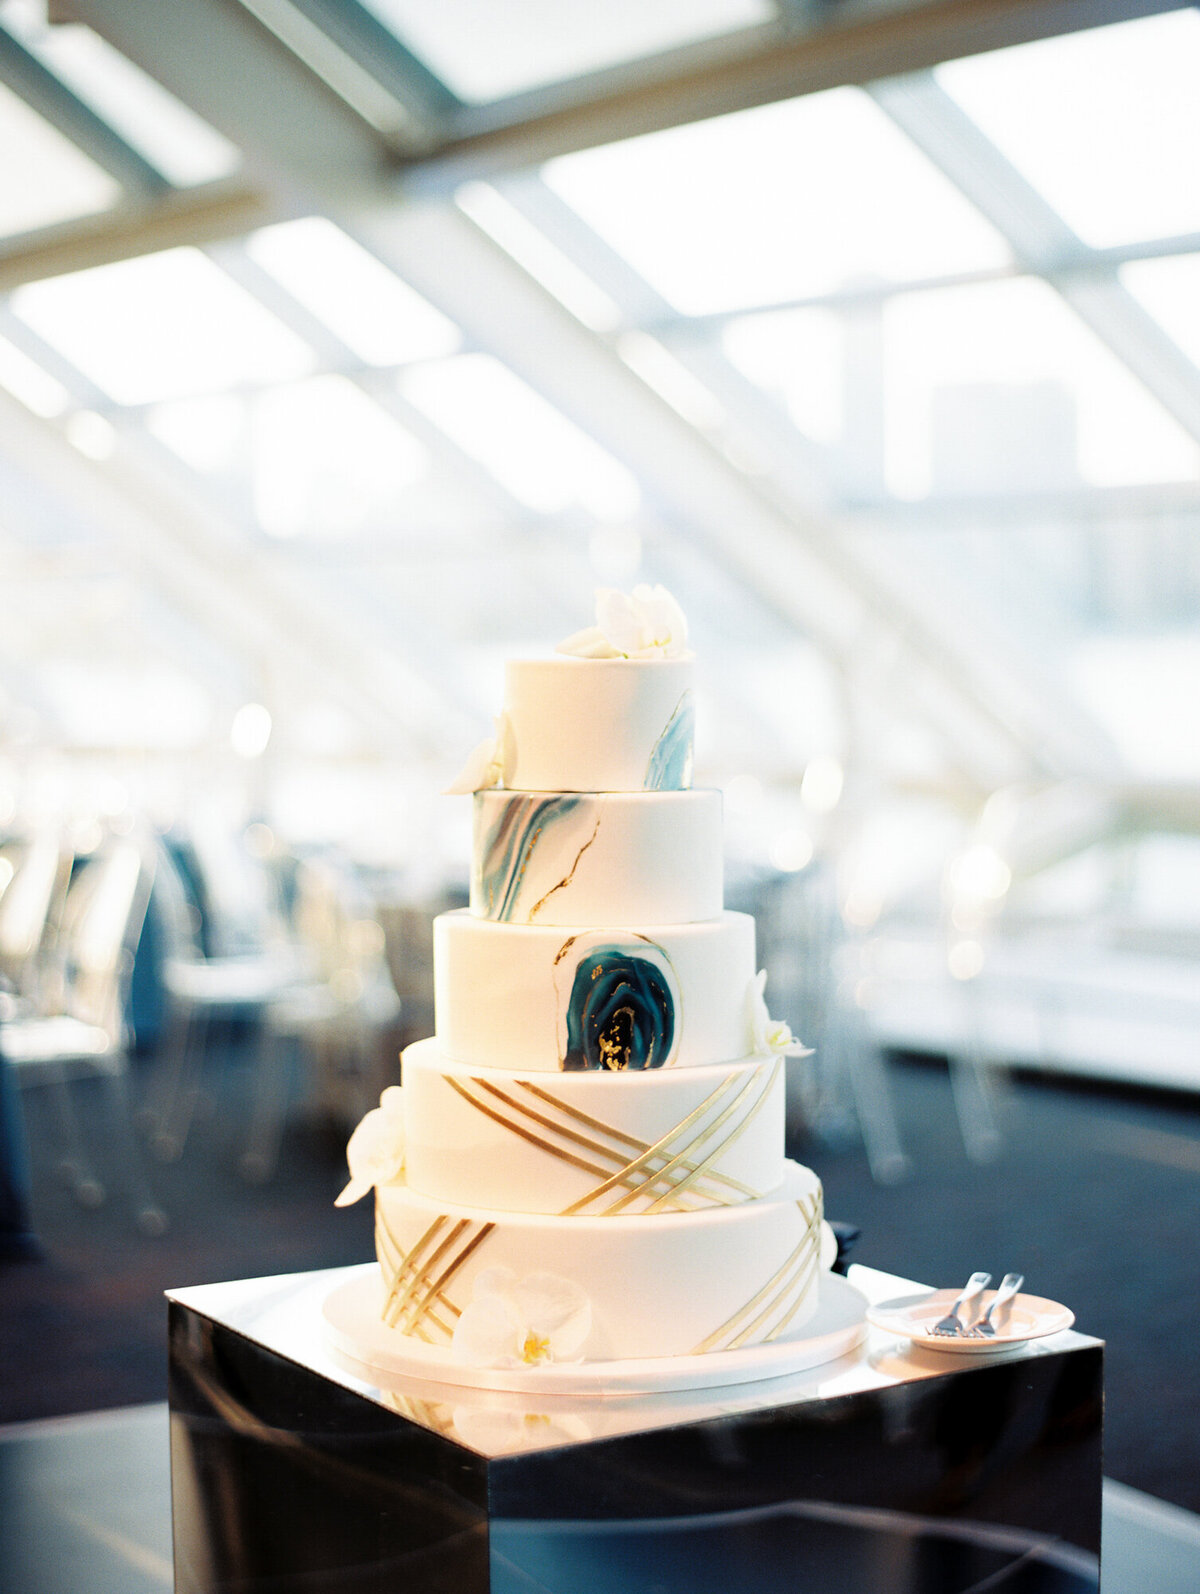 Five tier marble wedding cake on mirrored stand